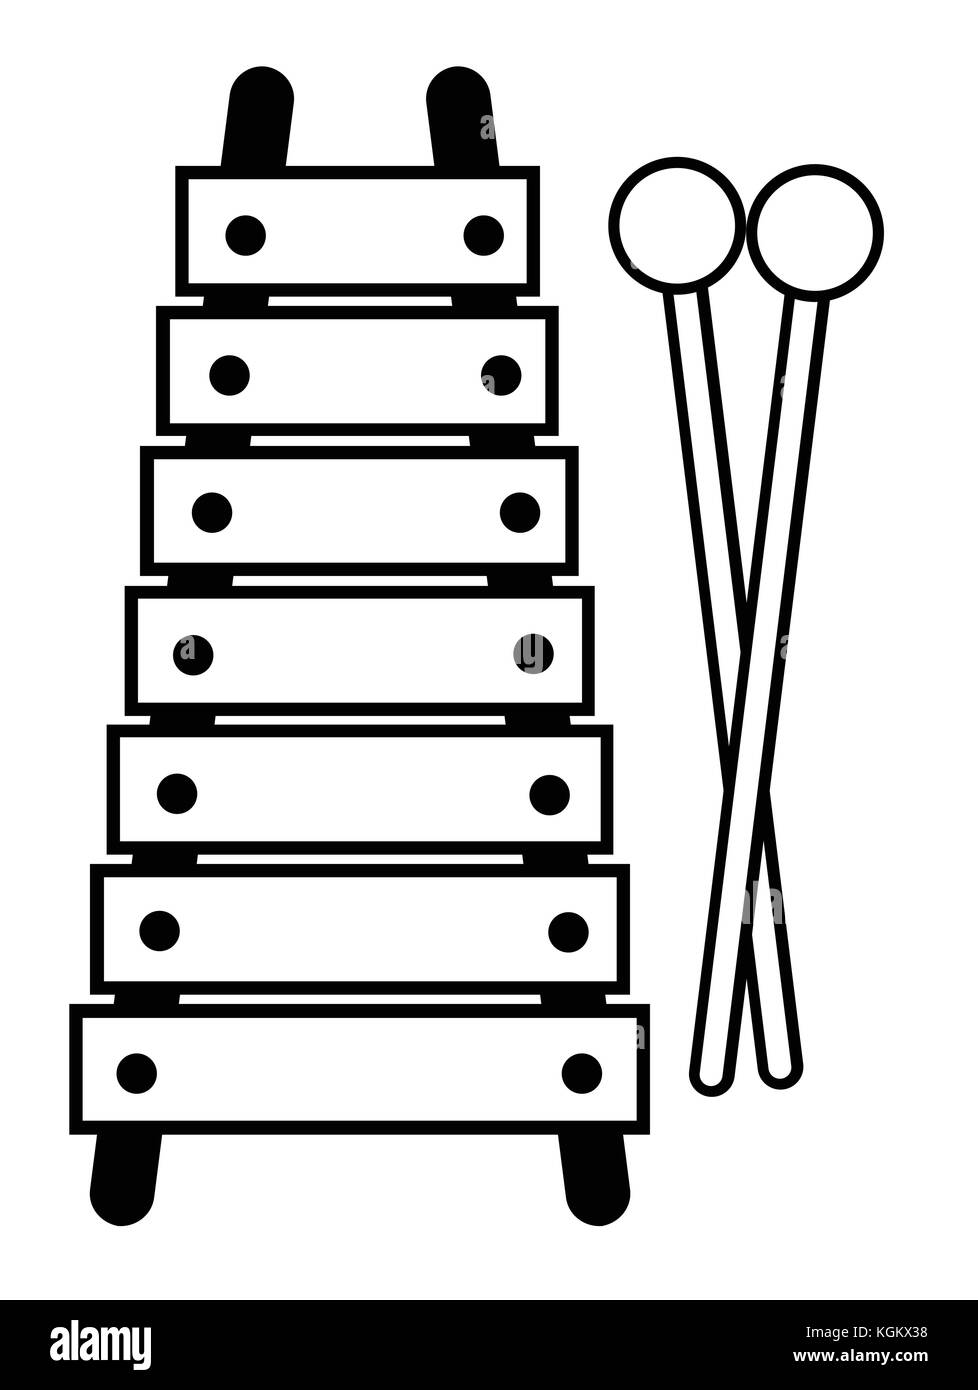 Line Art Xylophone : Xylophone clipart black and white pixshark